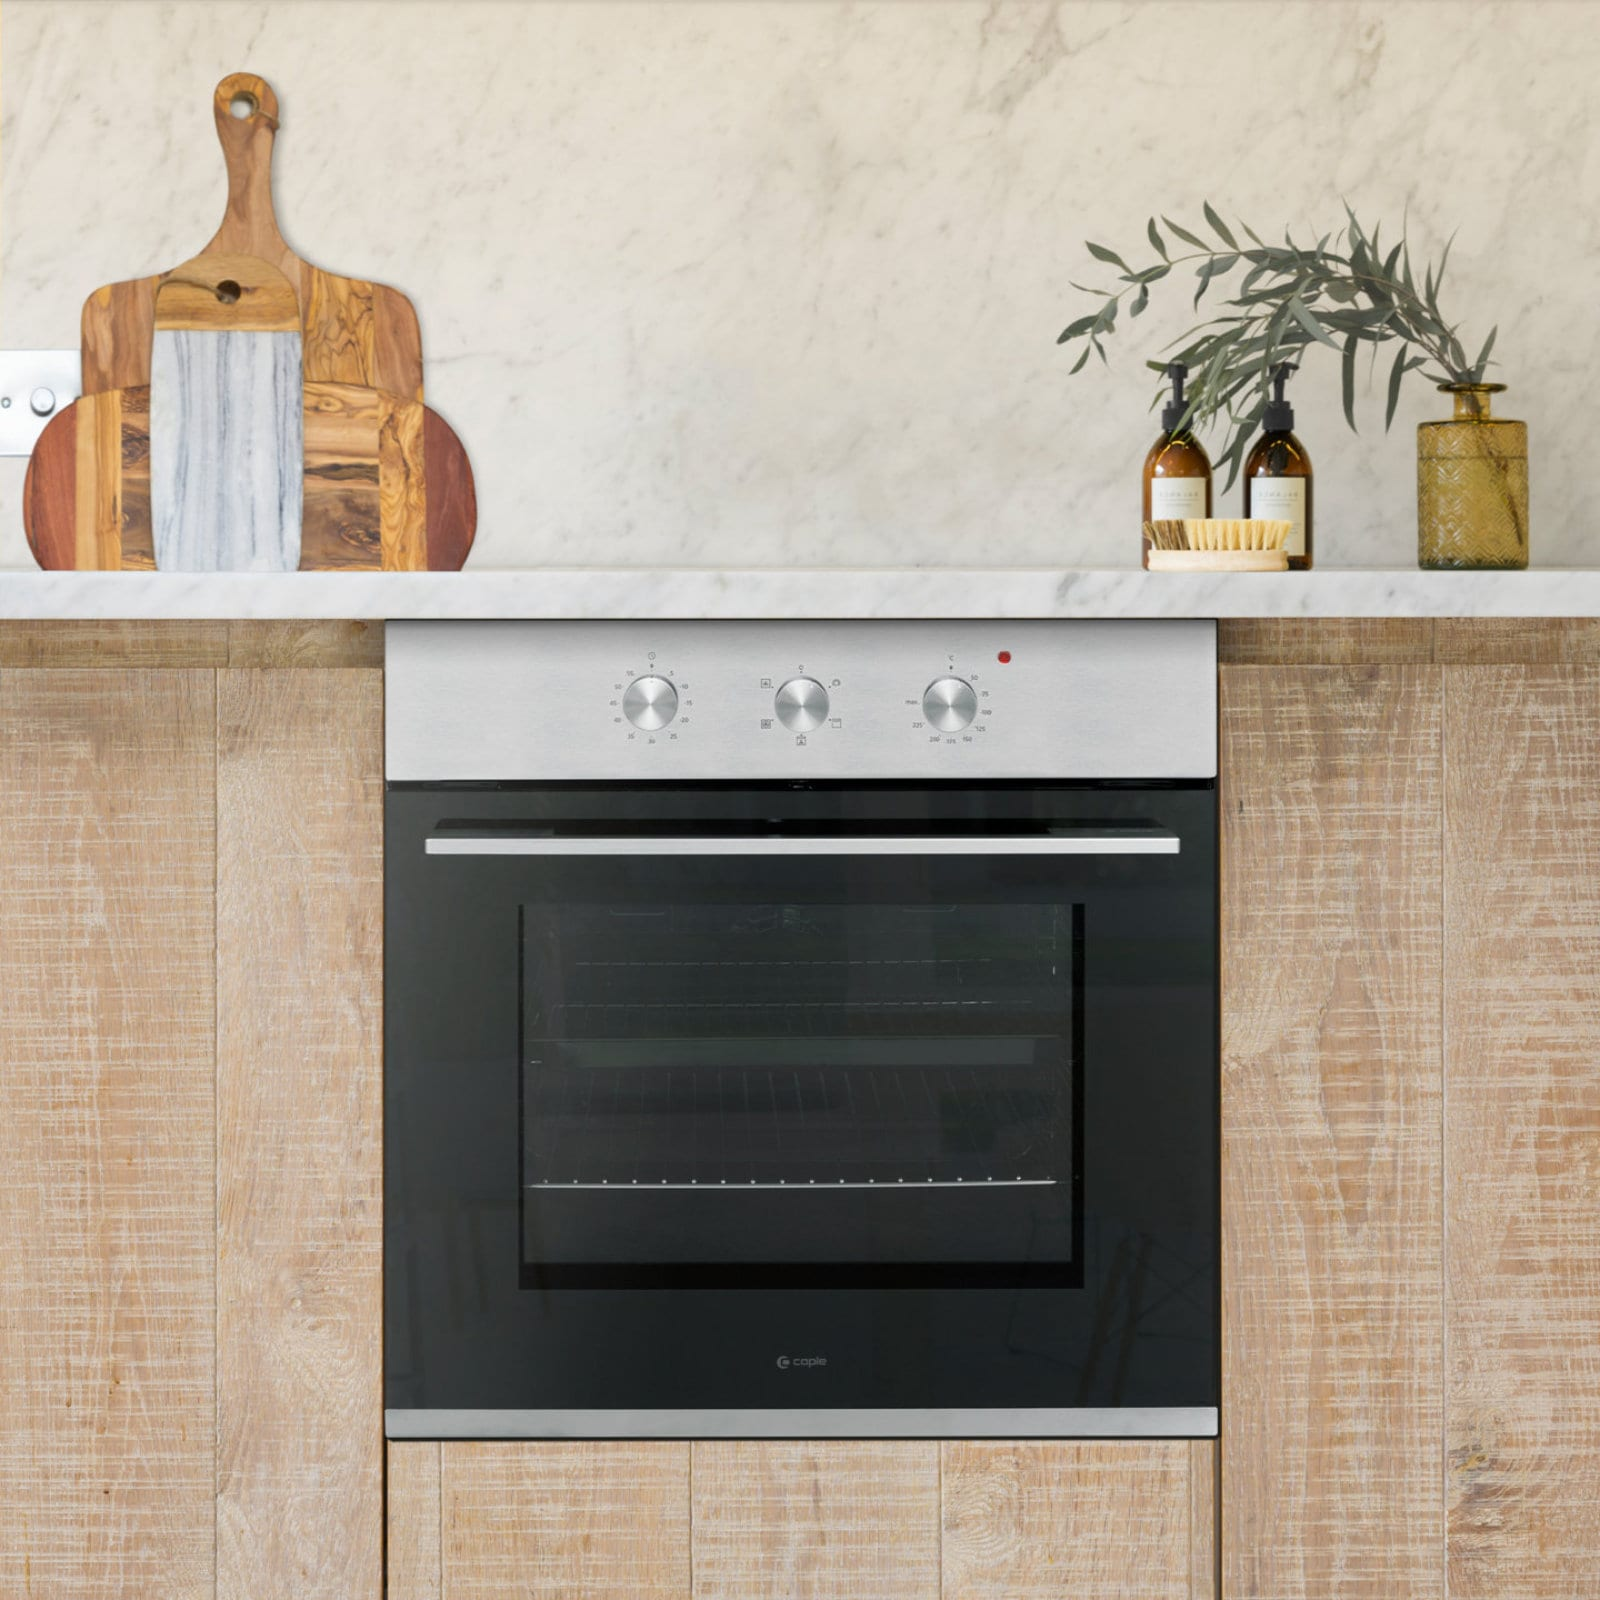 Caple Oven | Right Choice Kitchens, South Wales